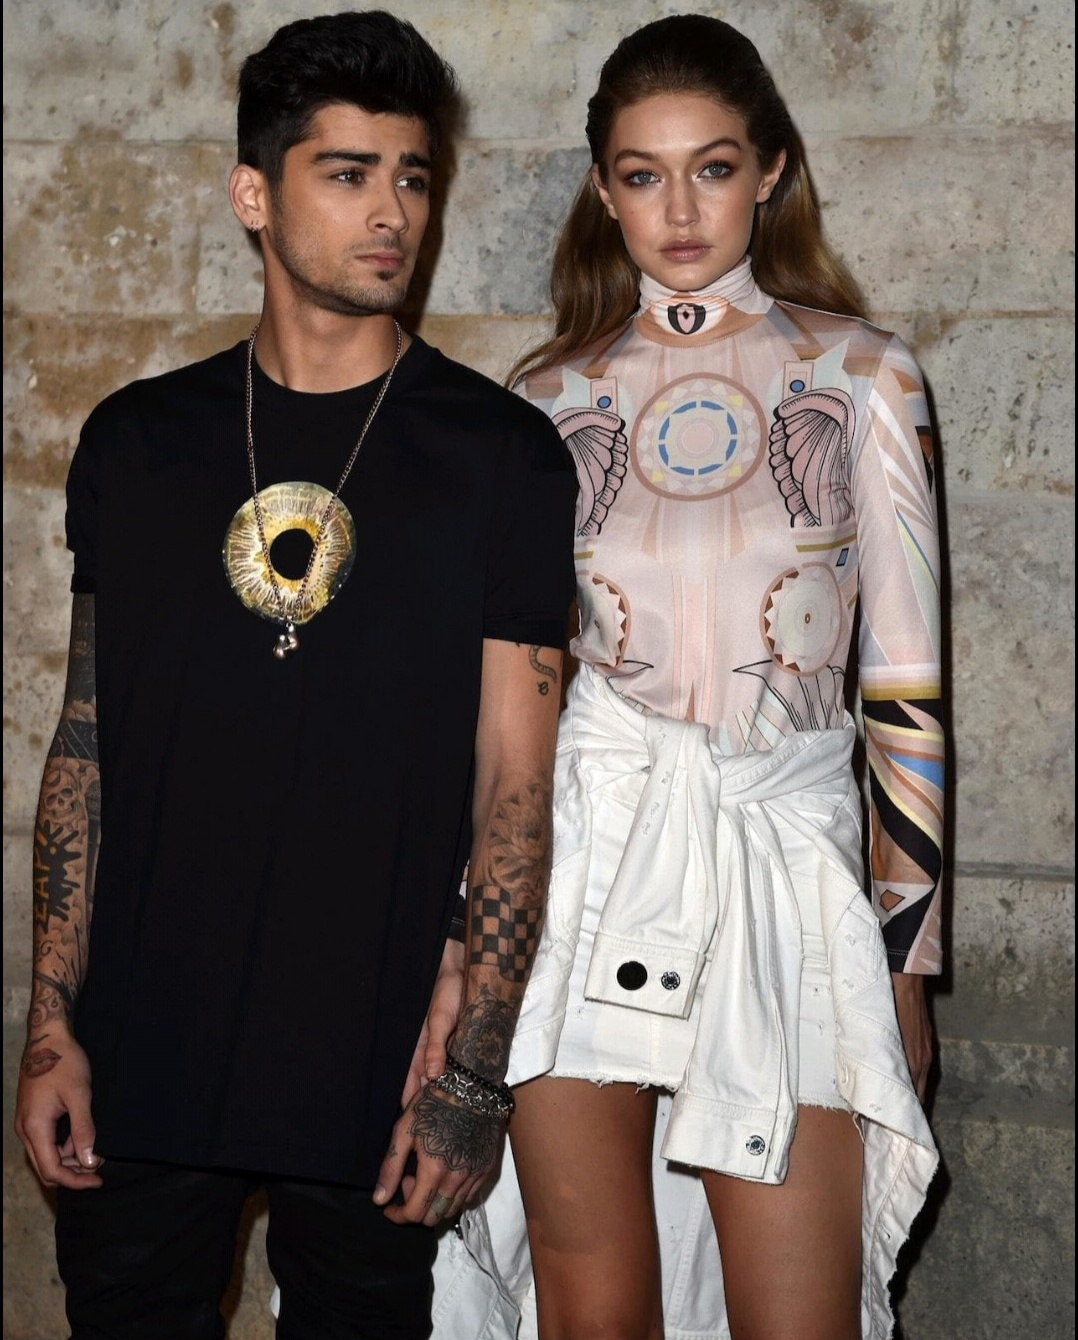 """Zayn Malik's new single """"Flames"""" finally gets released! But why does it seem as if the lyrics are for his ex Gigi Hadid? - Morning Picker"""